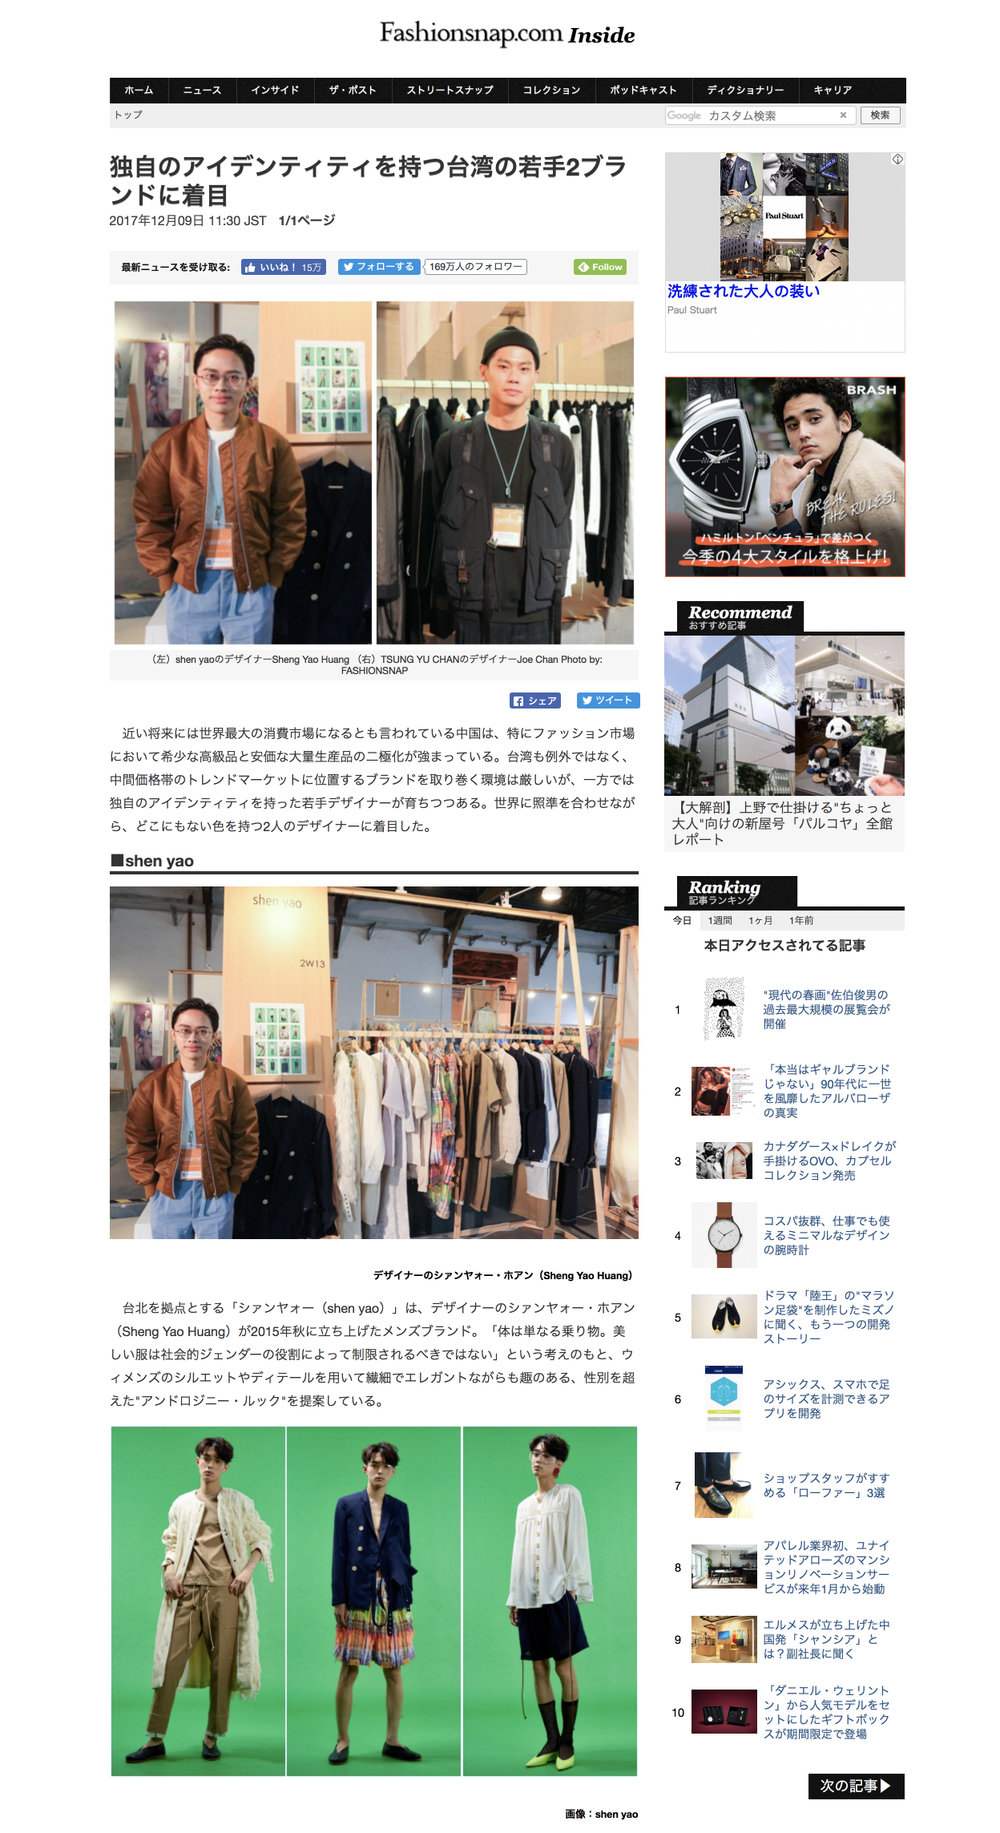 Fashionsnap Insider Featured